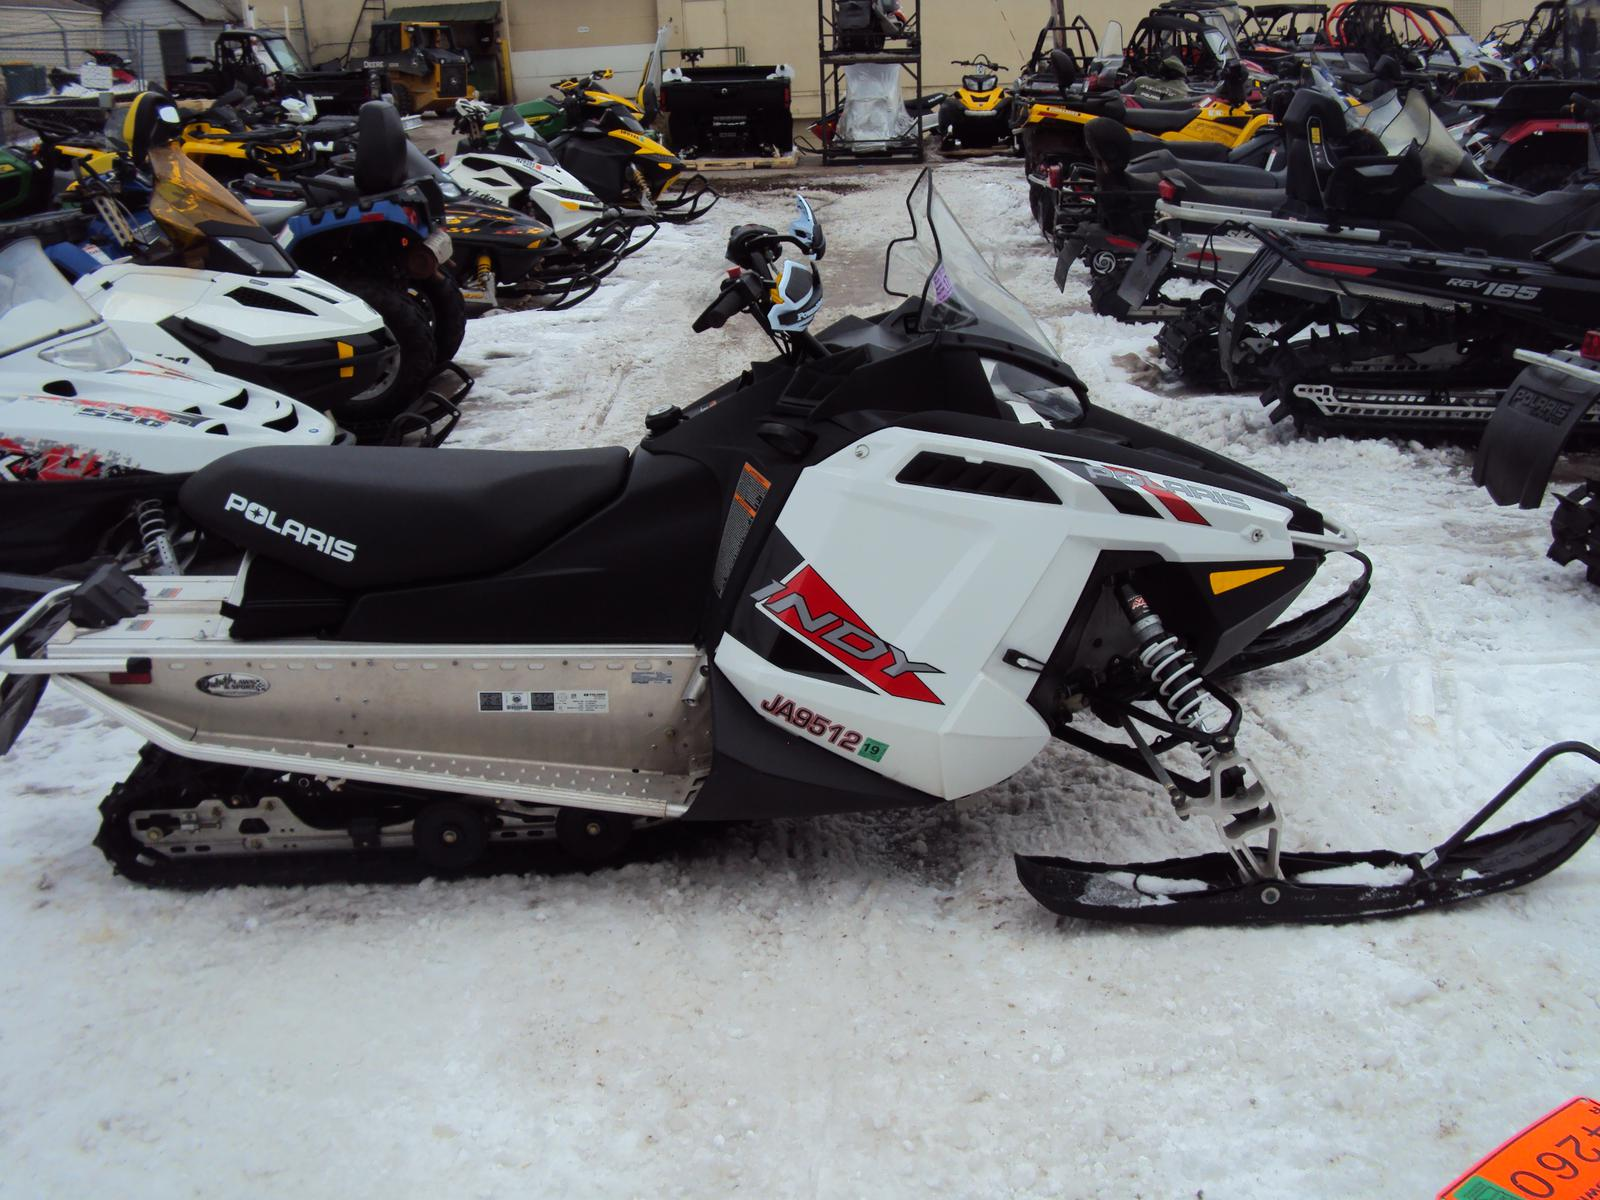 2017 Polaris Industries 550 Indy Es For In Duluth Mn Lawn Sport 218 628 3718